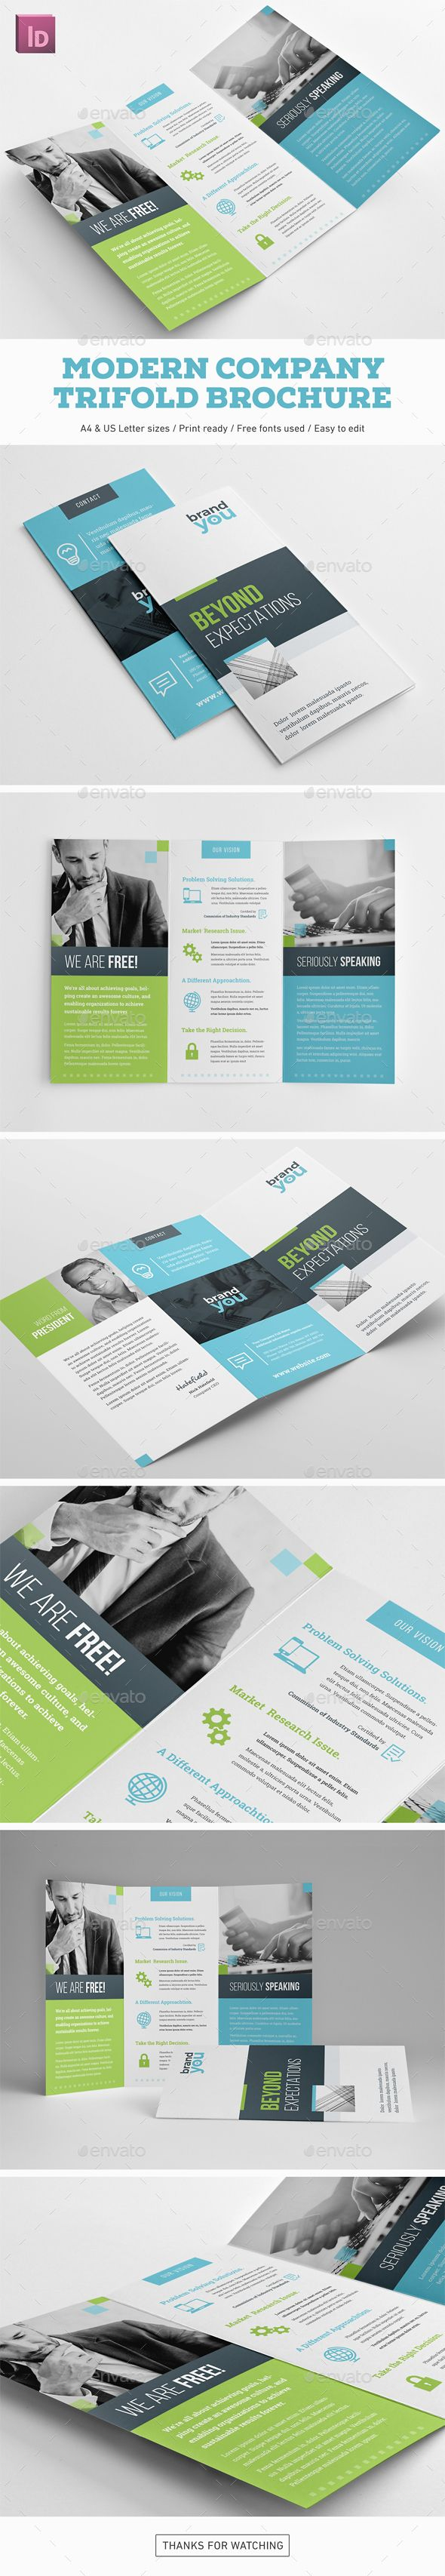 Modern Company Trifold Brochure Template InDesign INDD